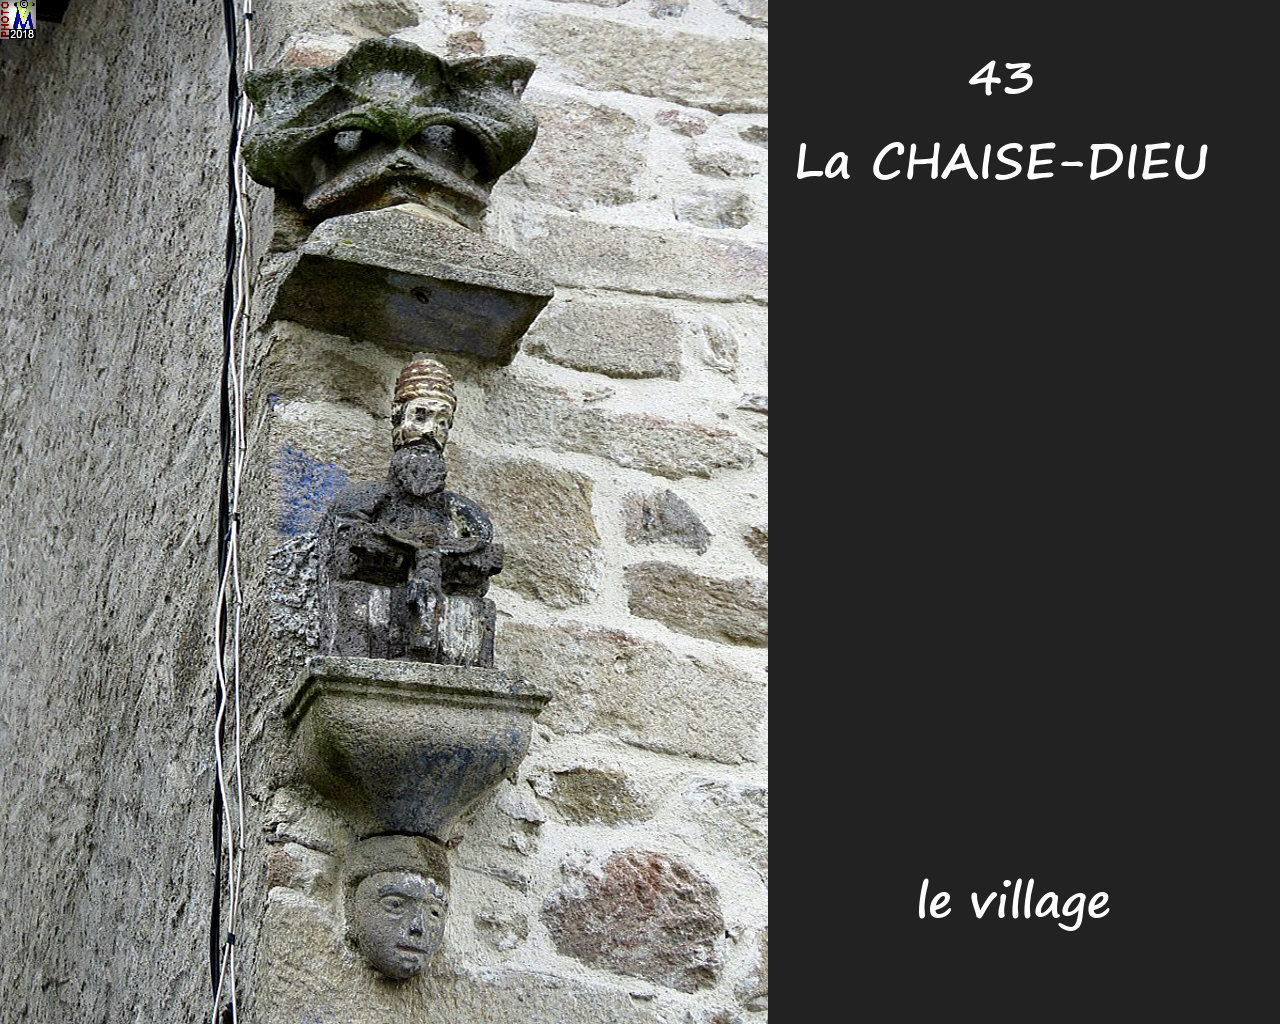 43CHAISE-DIEU_village_140.jpg